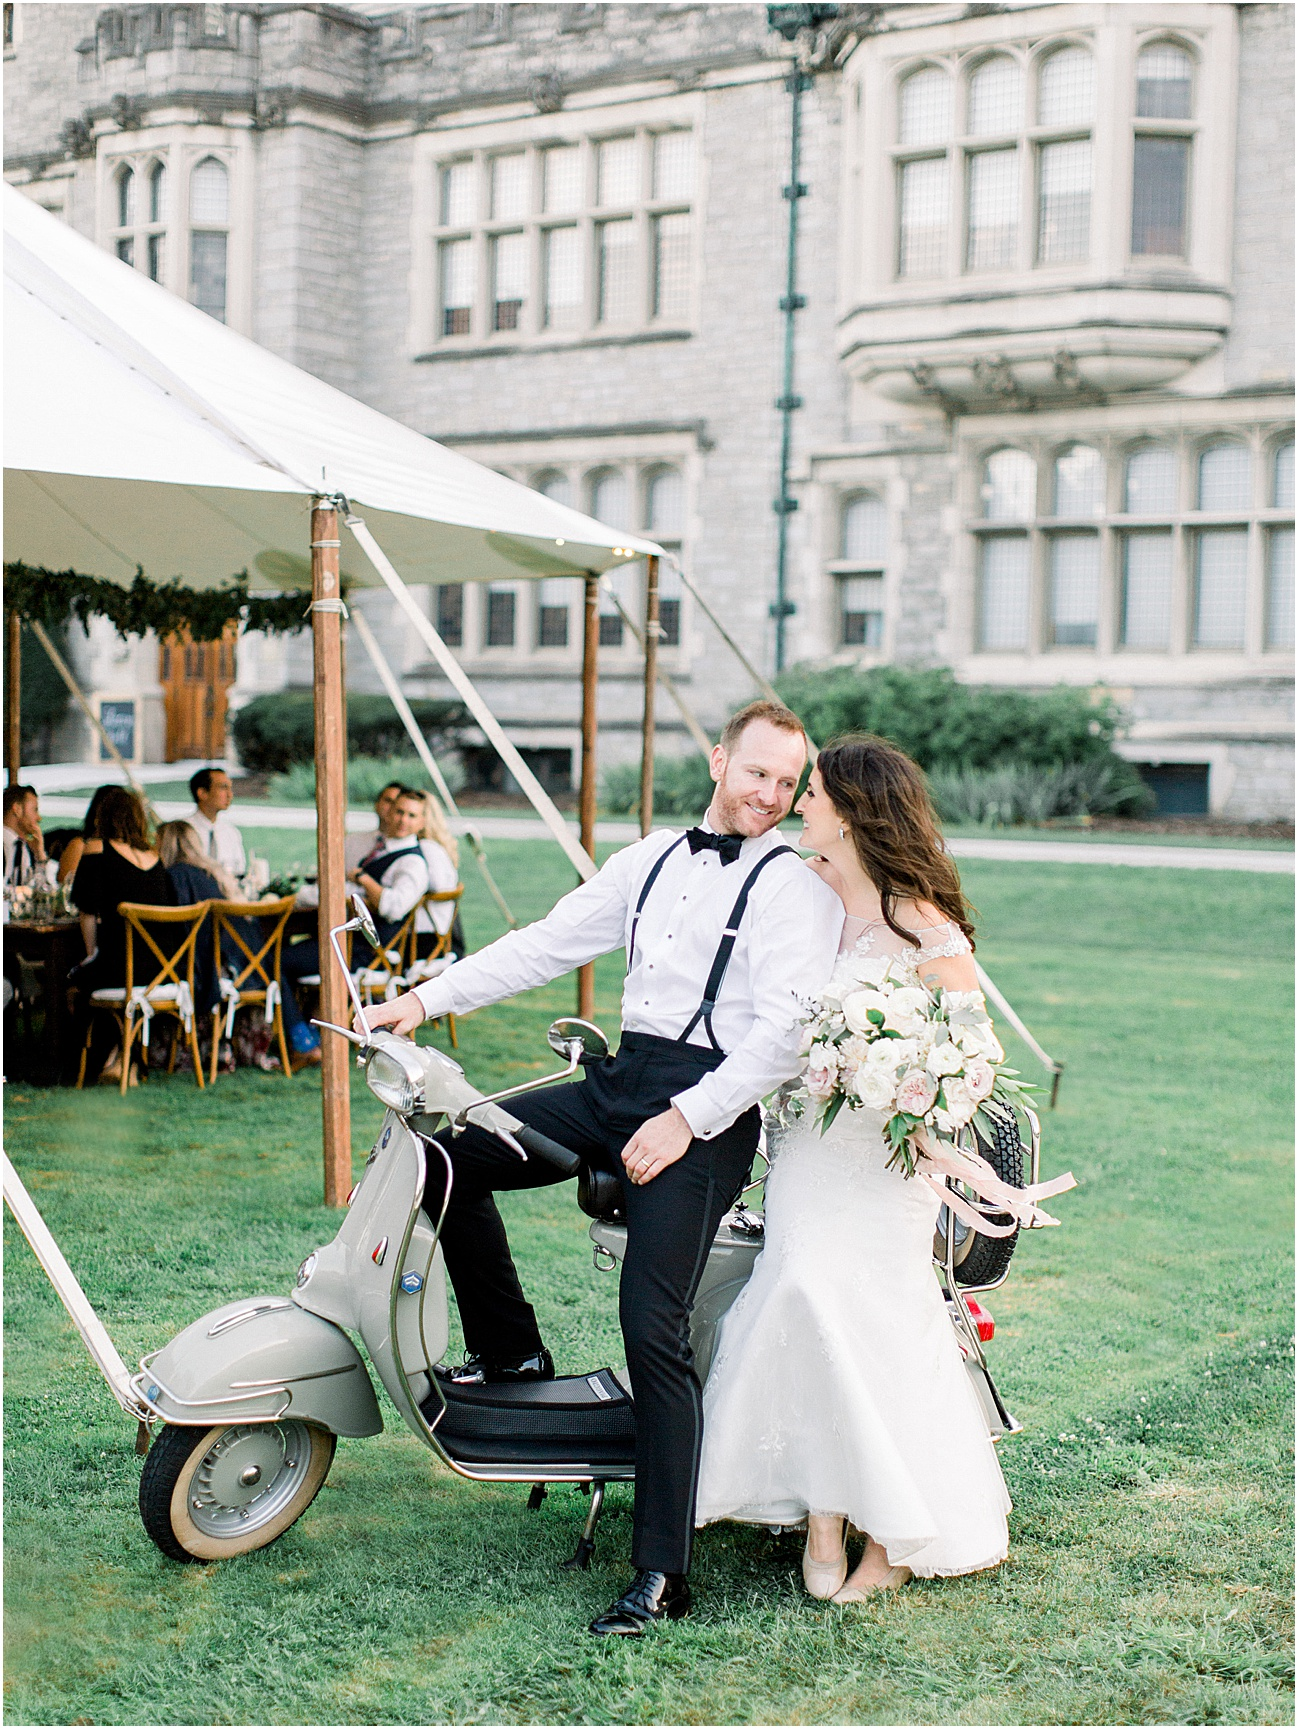 our_wedding_day_troy_NY_emma_willard_fairy_tale_royal_neutral_beauty_and_the_beast_moped_private_estate_cape_cod_boston_wedding_photographer_meredith_jane_photography_chris_kerr_photo_1997.jpg